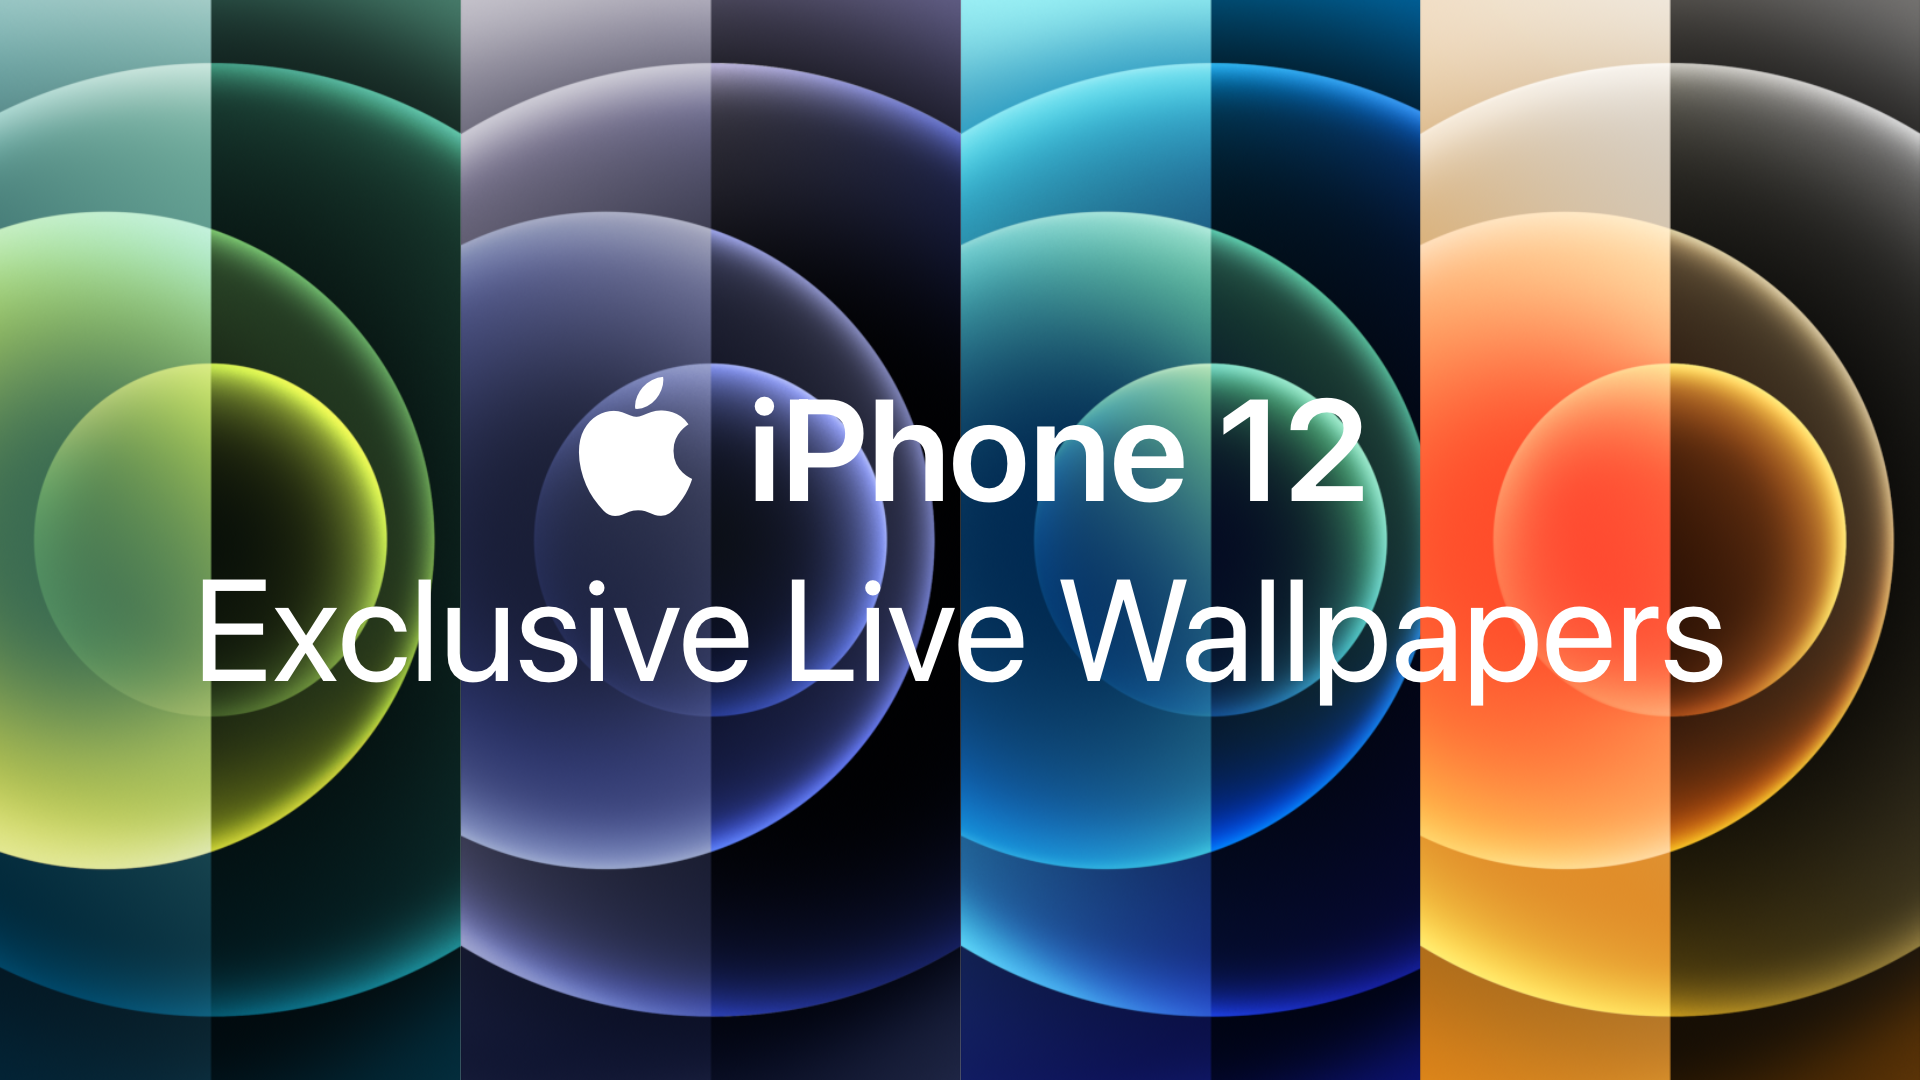 Awesome Iphone 12 Wallpaper 4k Live wallpapers to download for free greenvirals